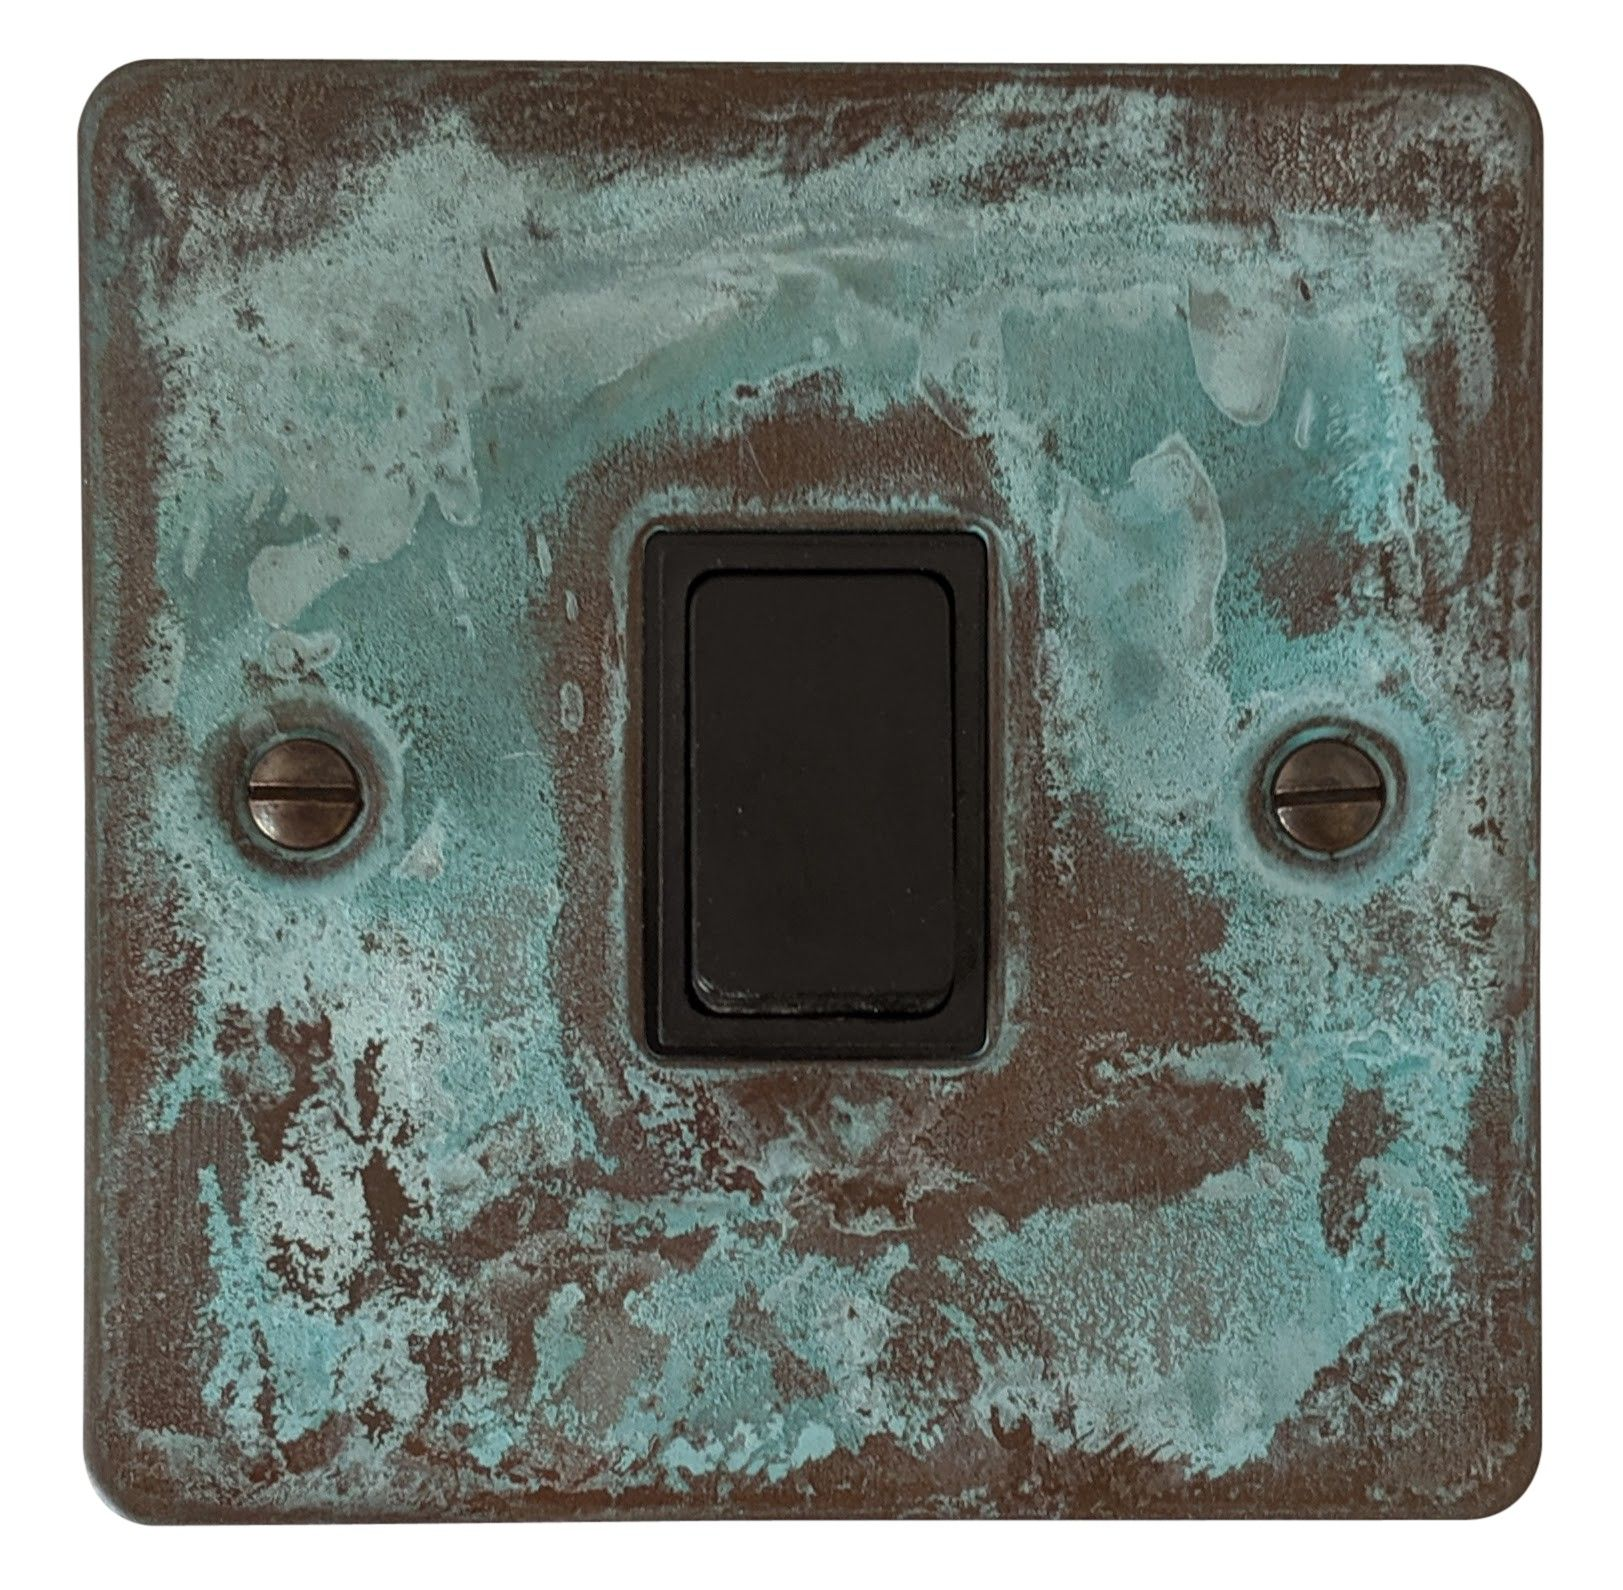 G&H FV1B Flat Plate Verdigris 1 Gang 1 or 2 Way Rocker Light Switch